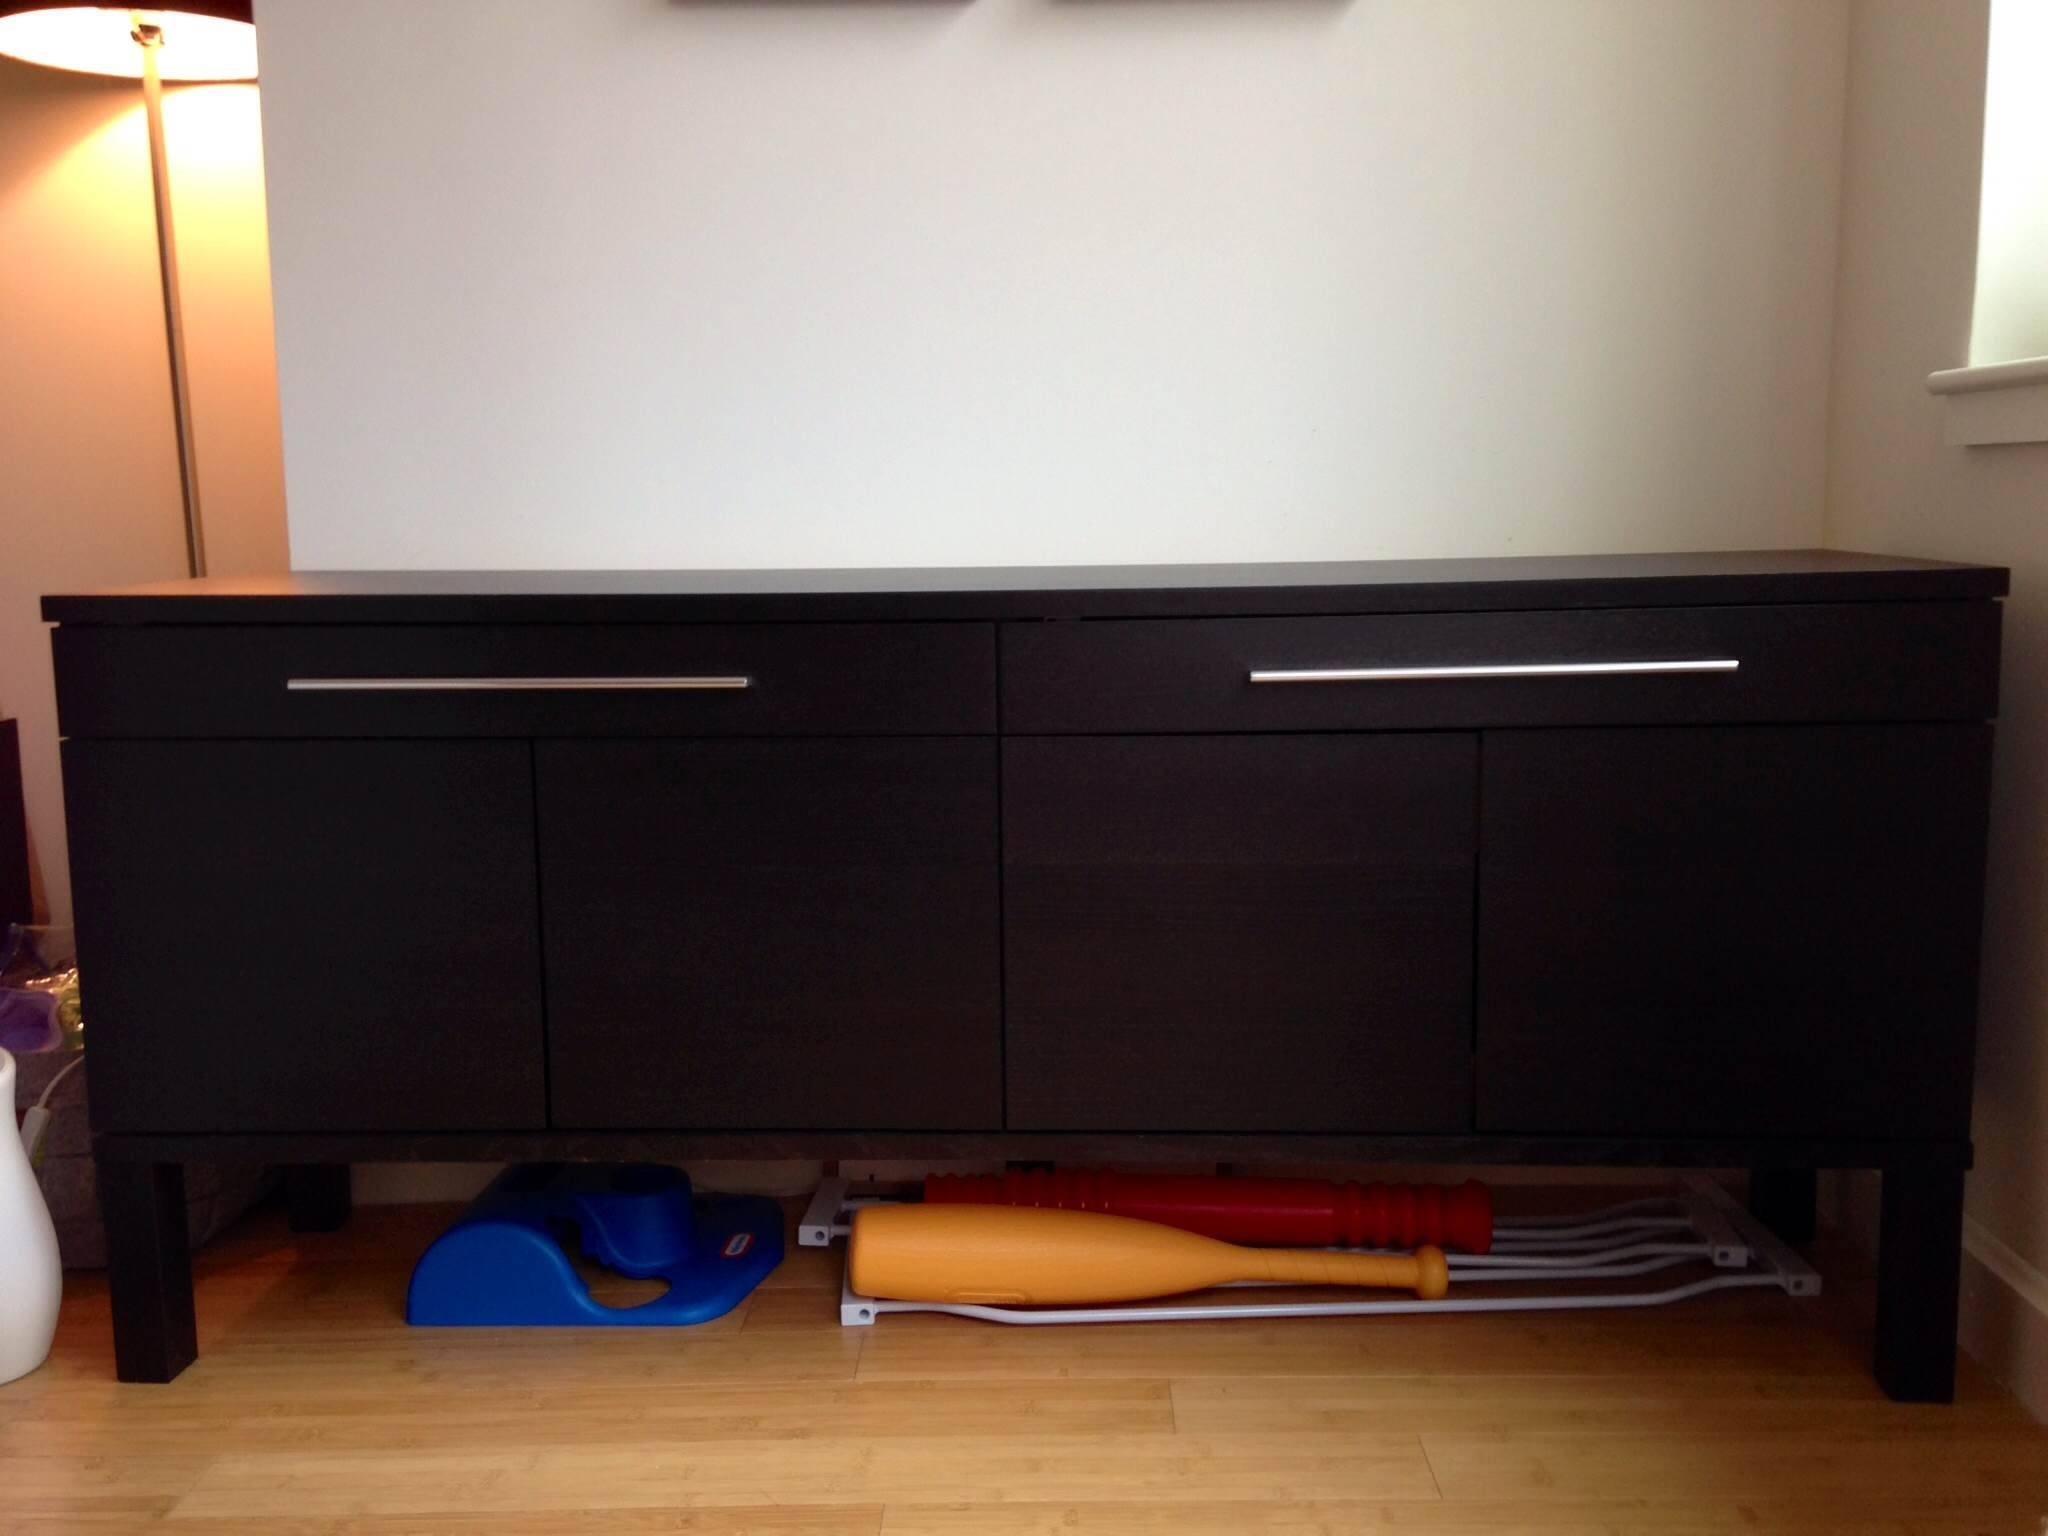 Ikea Bjursta Sideboard Dining Storage, Dark Brown – $100 | Too Big throughout Ikea Bjursta Sideboards (Image 6 of 15)